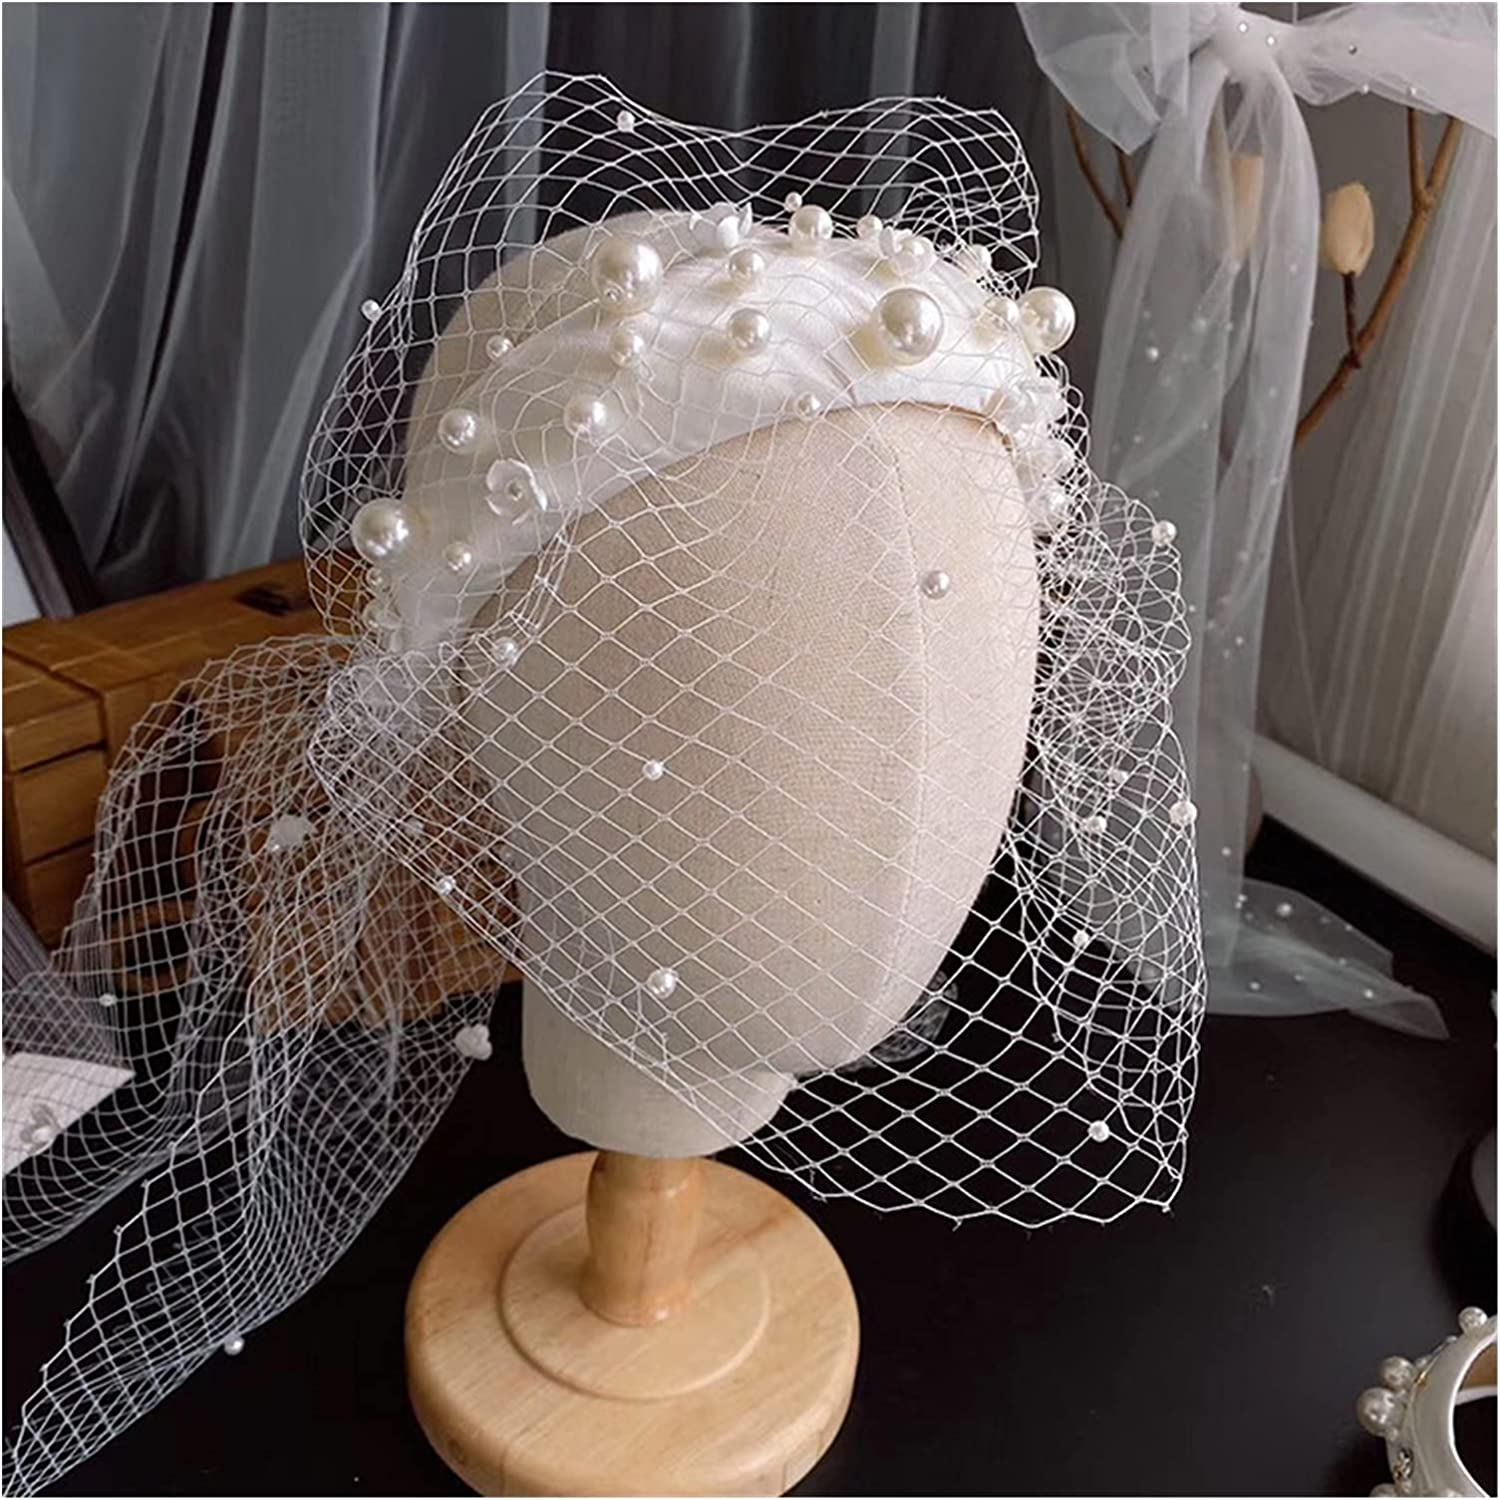 Max 75% OFF List price chenfeng Bridal Headband New Surface Mesh Pearl